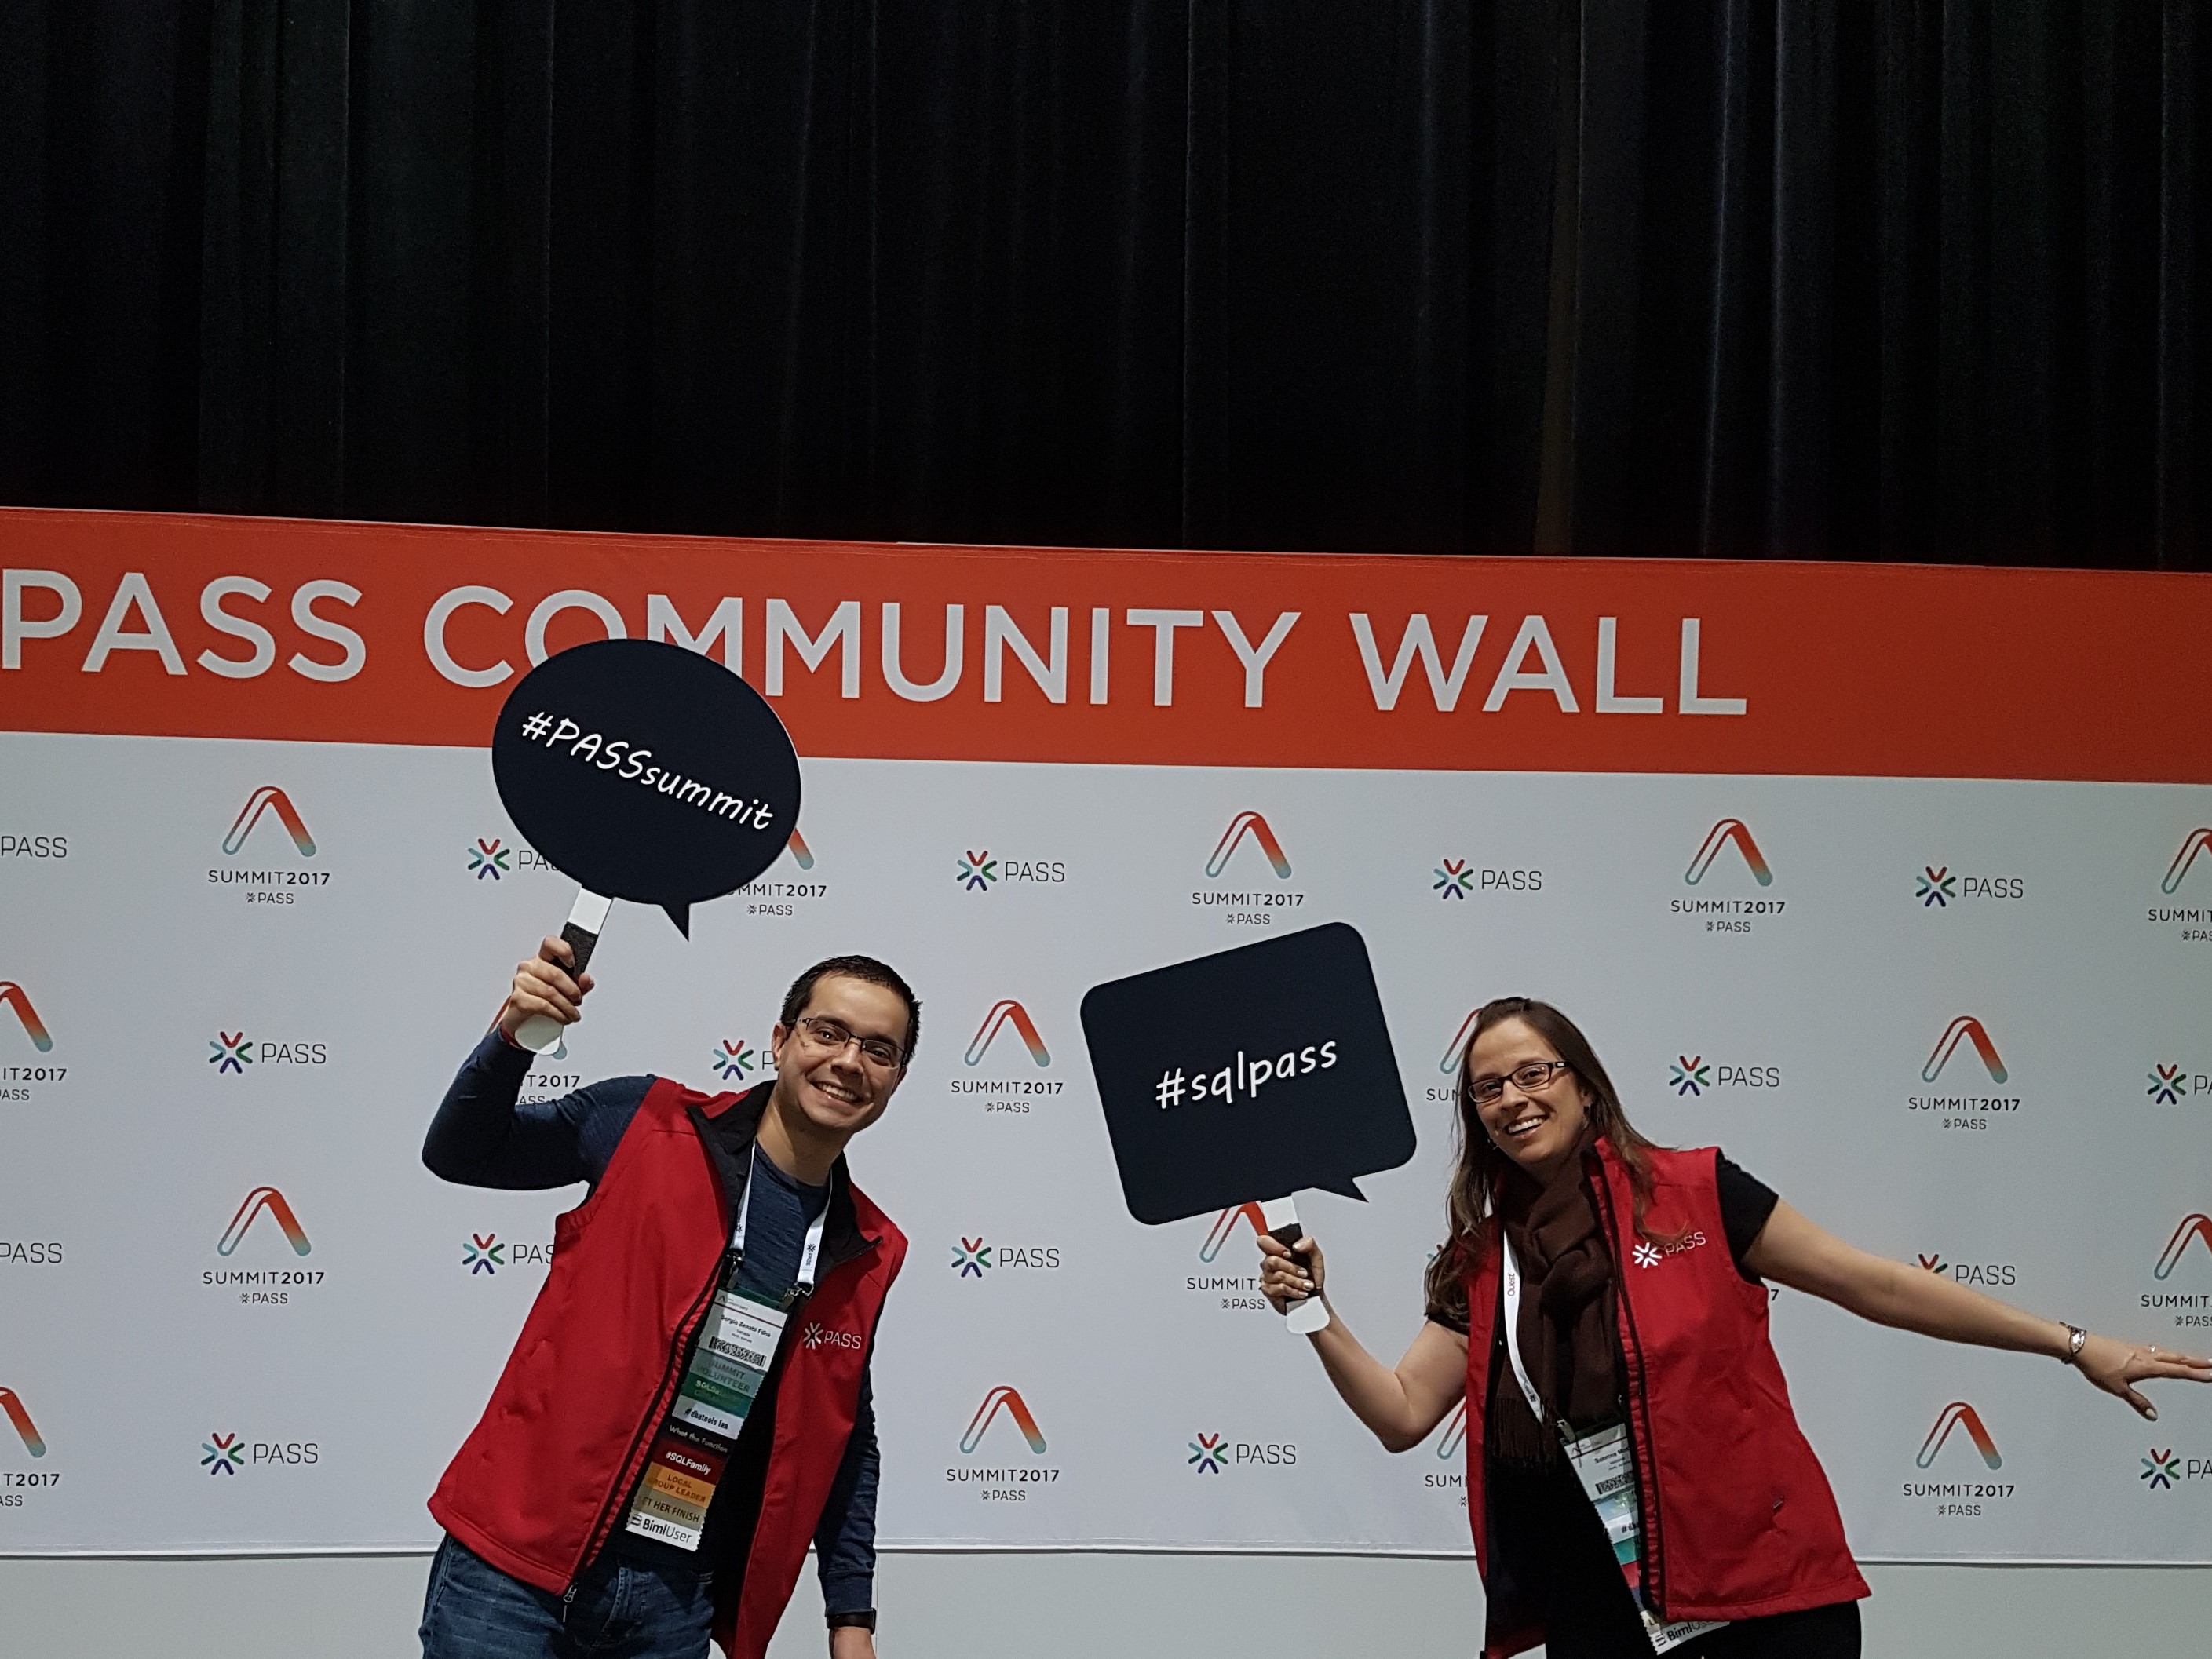 PASSSummit2017_PASS Community Wall 1